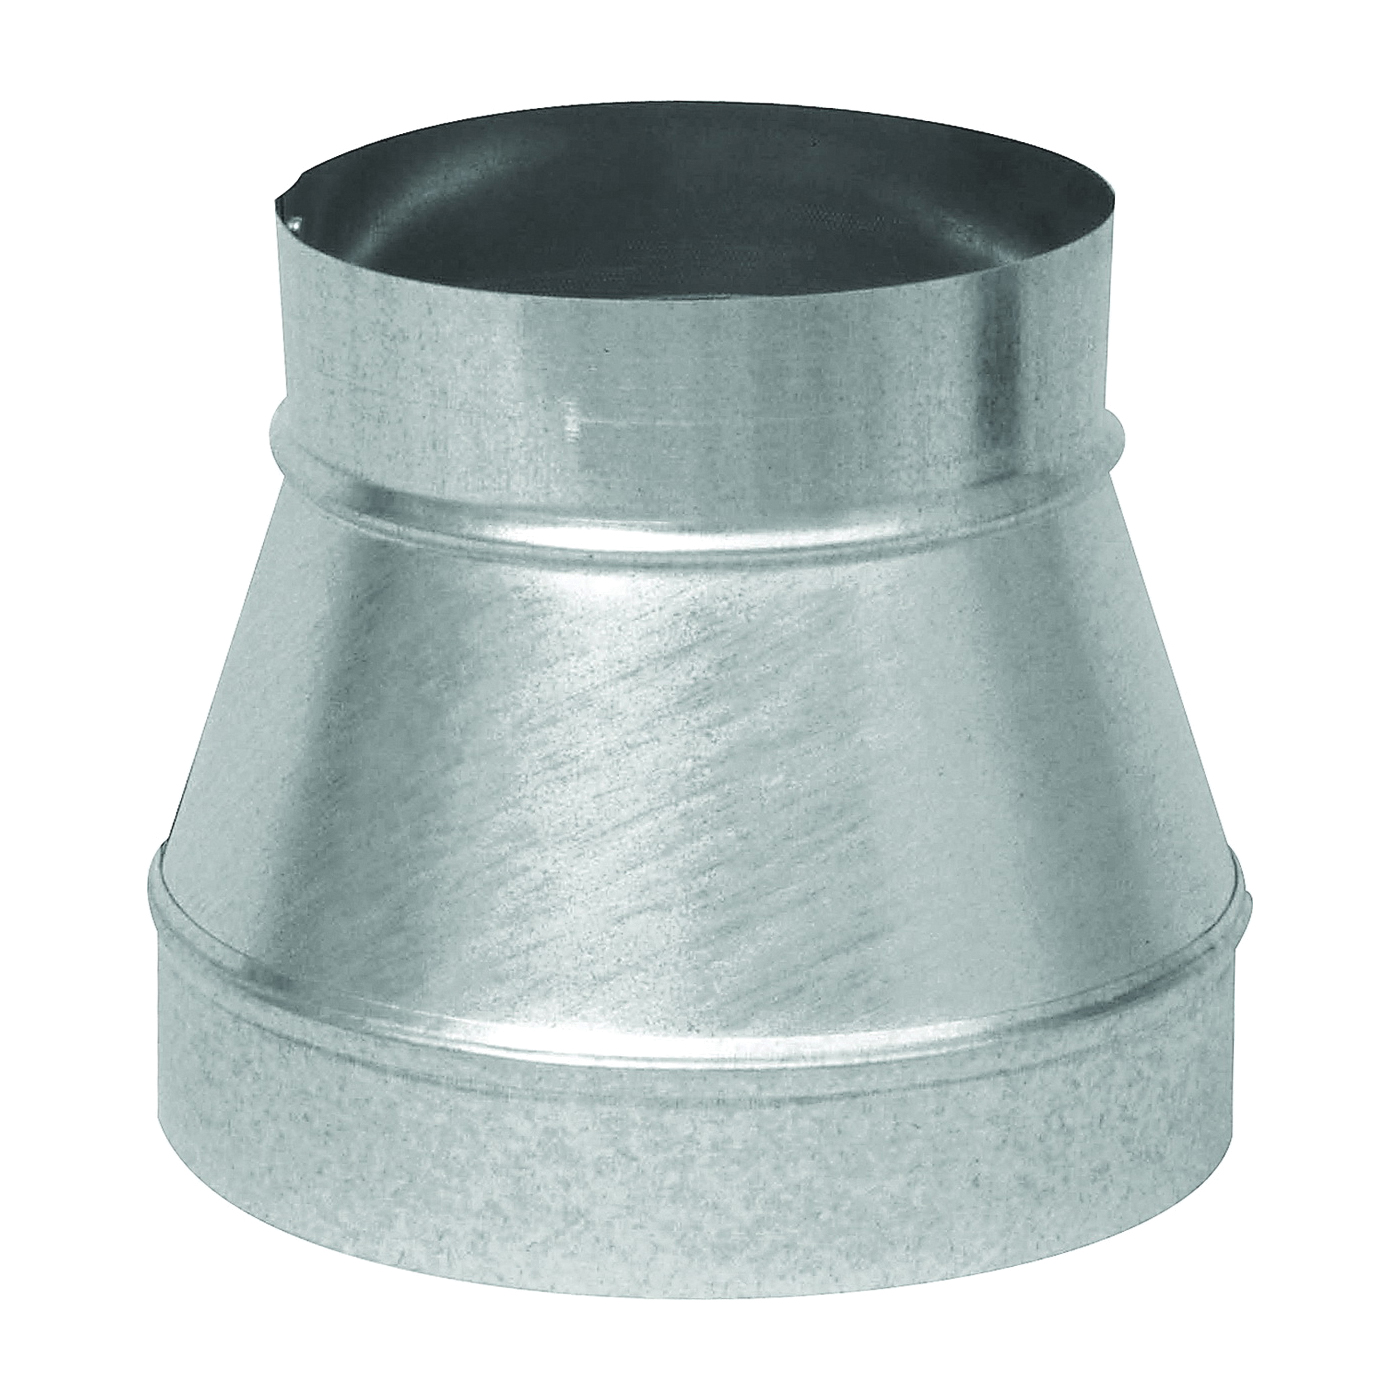 Picture of Imperial GV1204 Stove Pipe Reducer, 8 x 7 in, 26 ga Thick Wall, Black, Galvanized